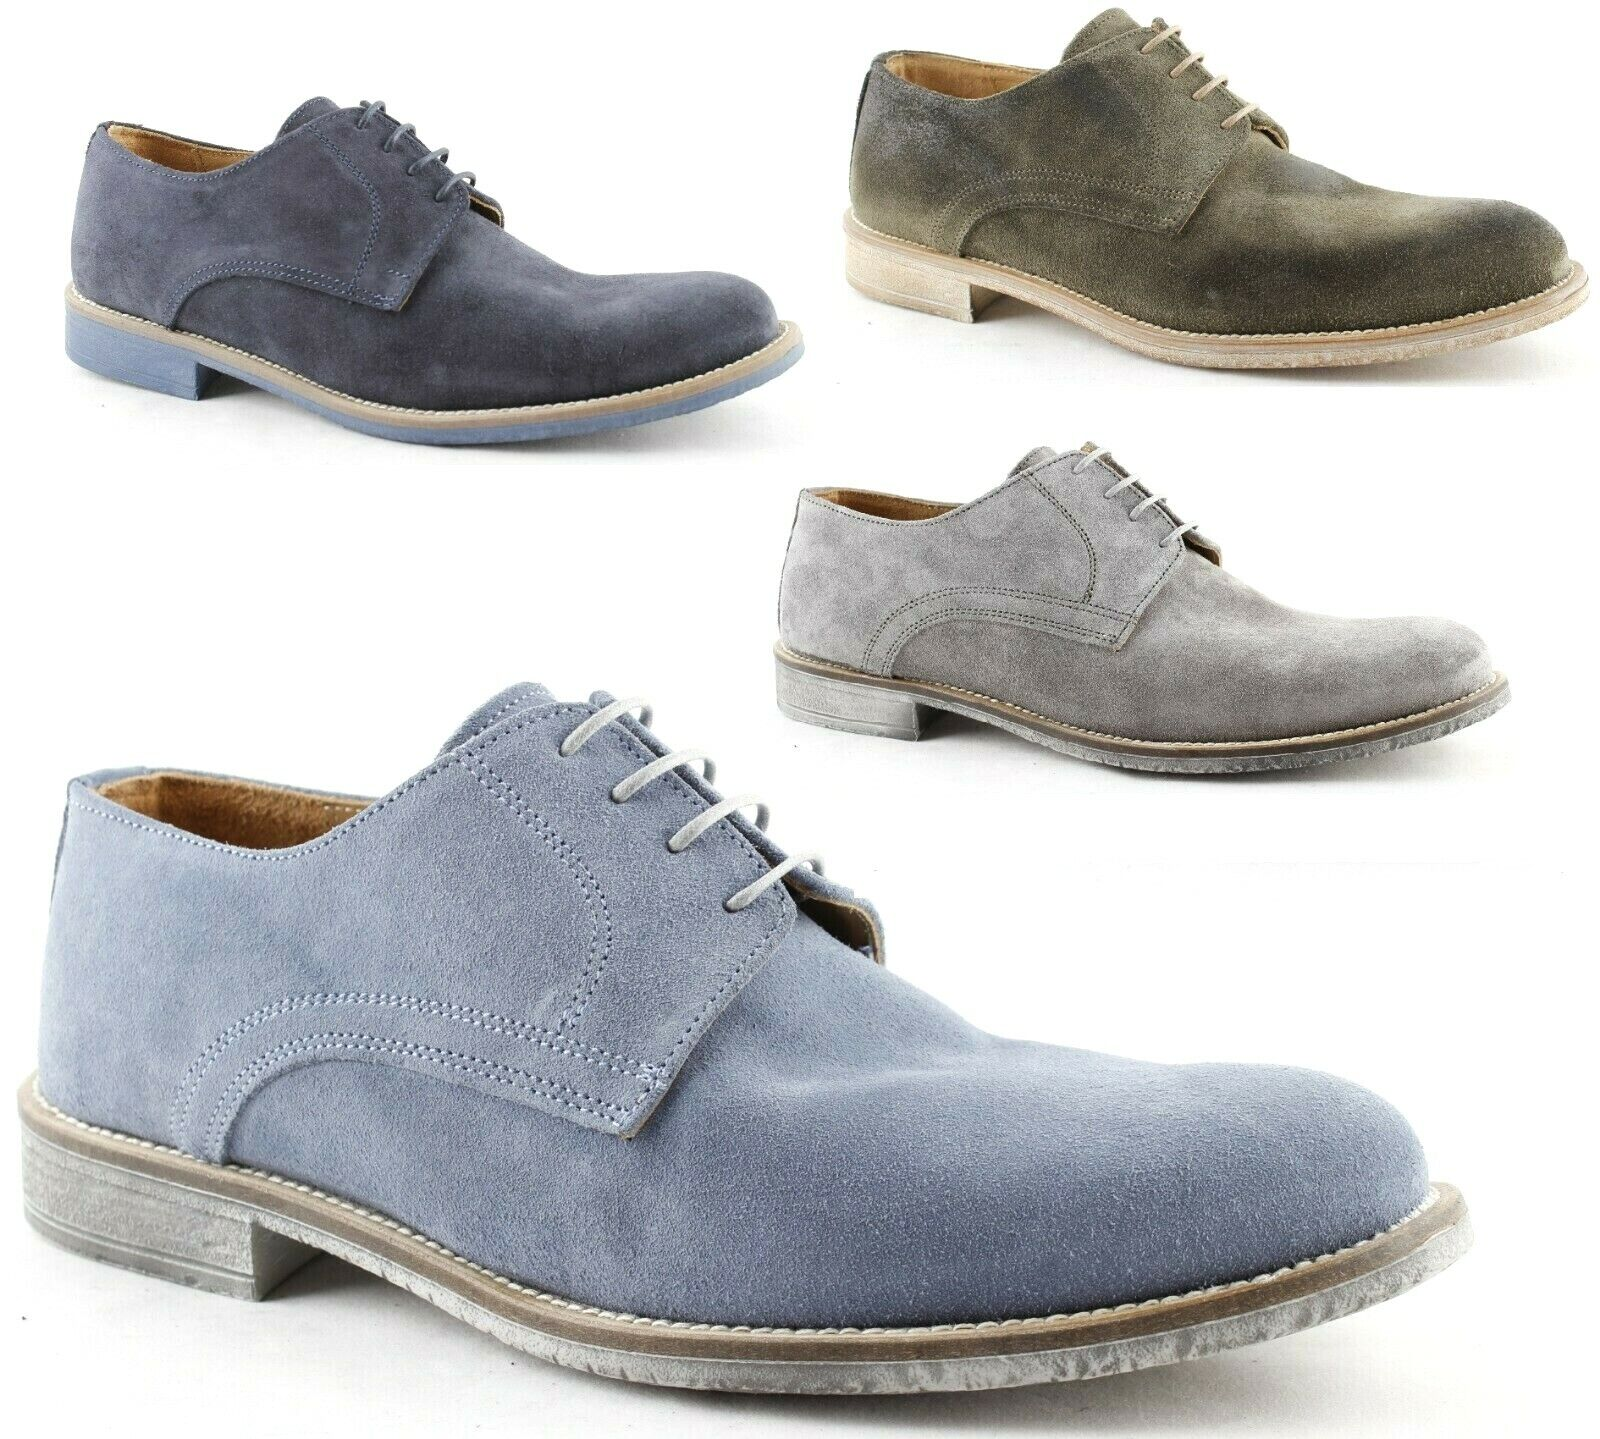 shoes Derby Leather Men Suede Mode Oxford smooth bluee jeans grey green 06